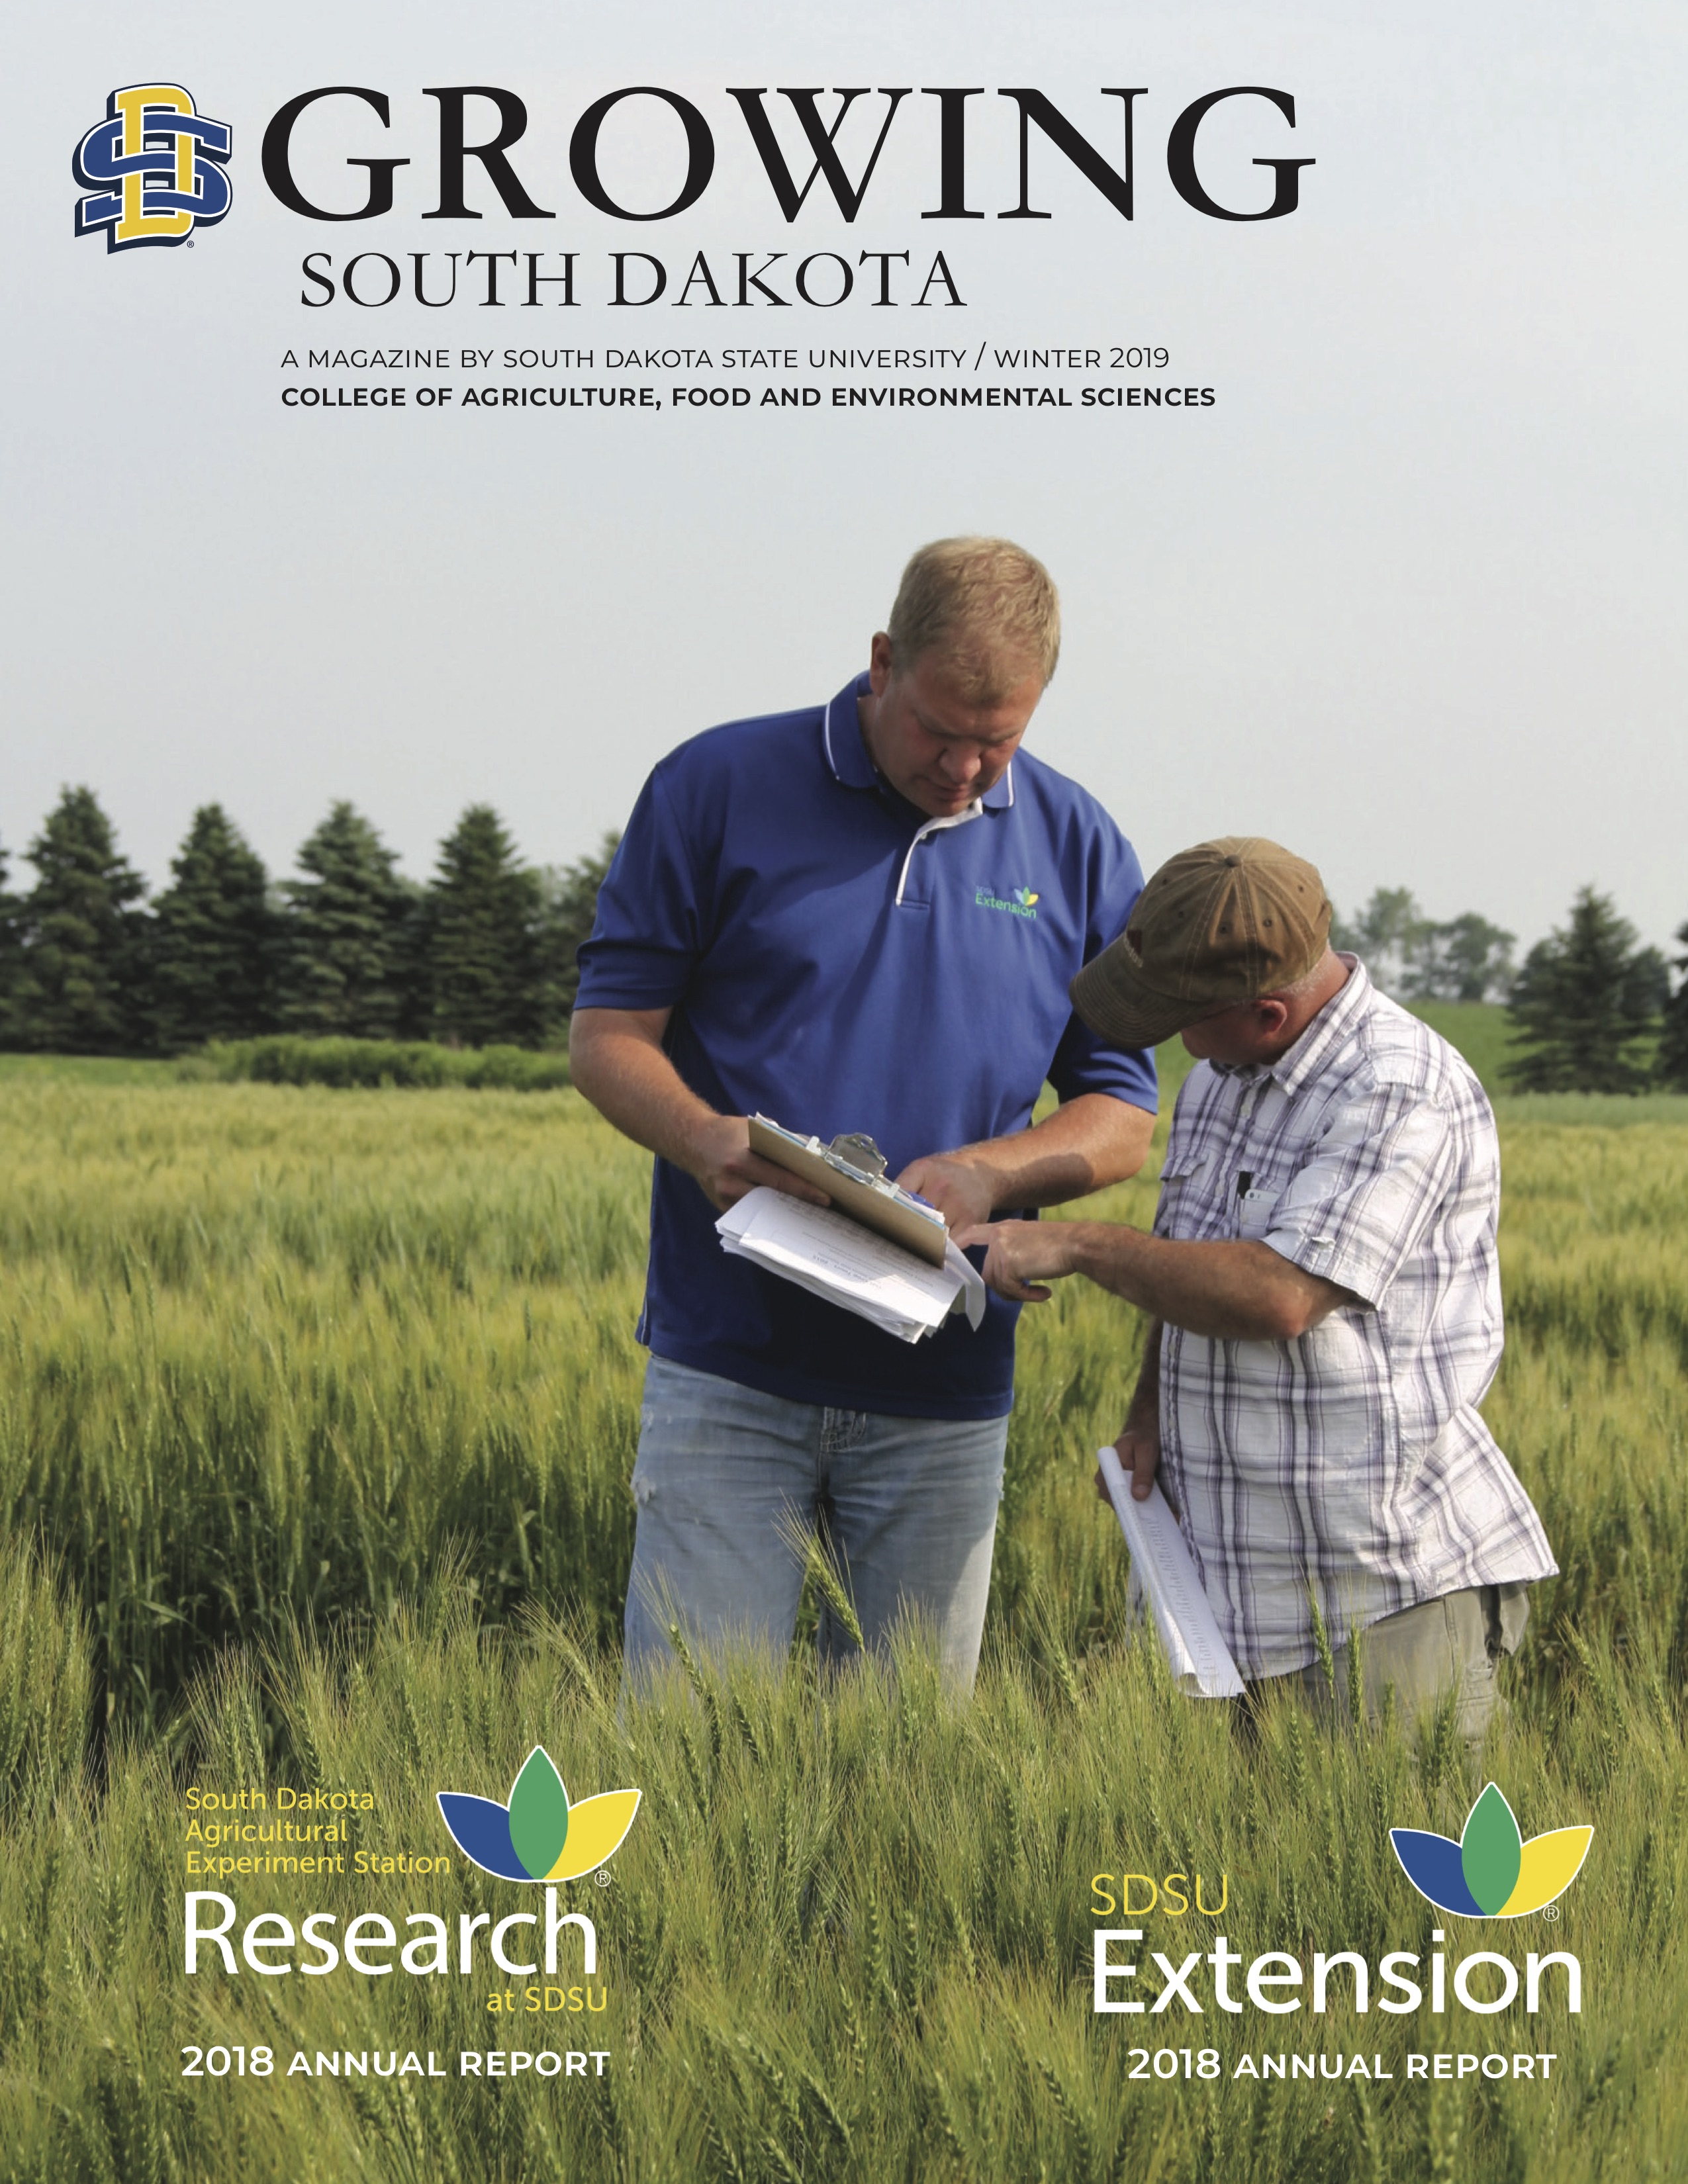 Cover of Growing South Dakota Magazine